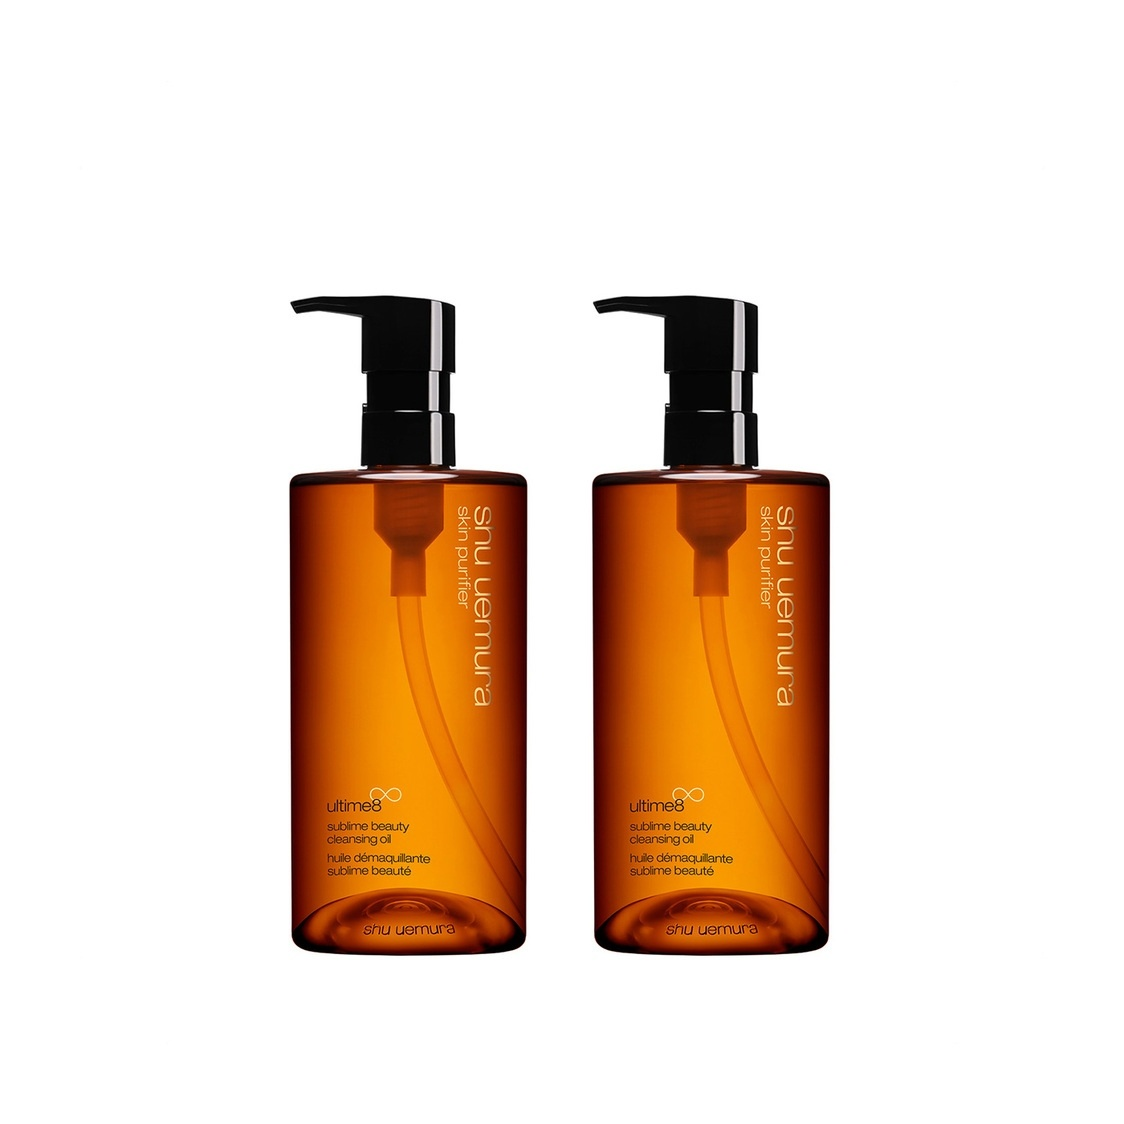 Ultime8 Sublime Cleansing Oil Duo Set